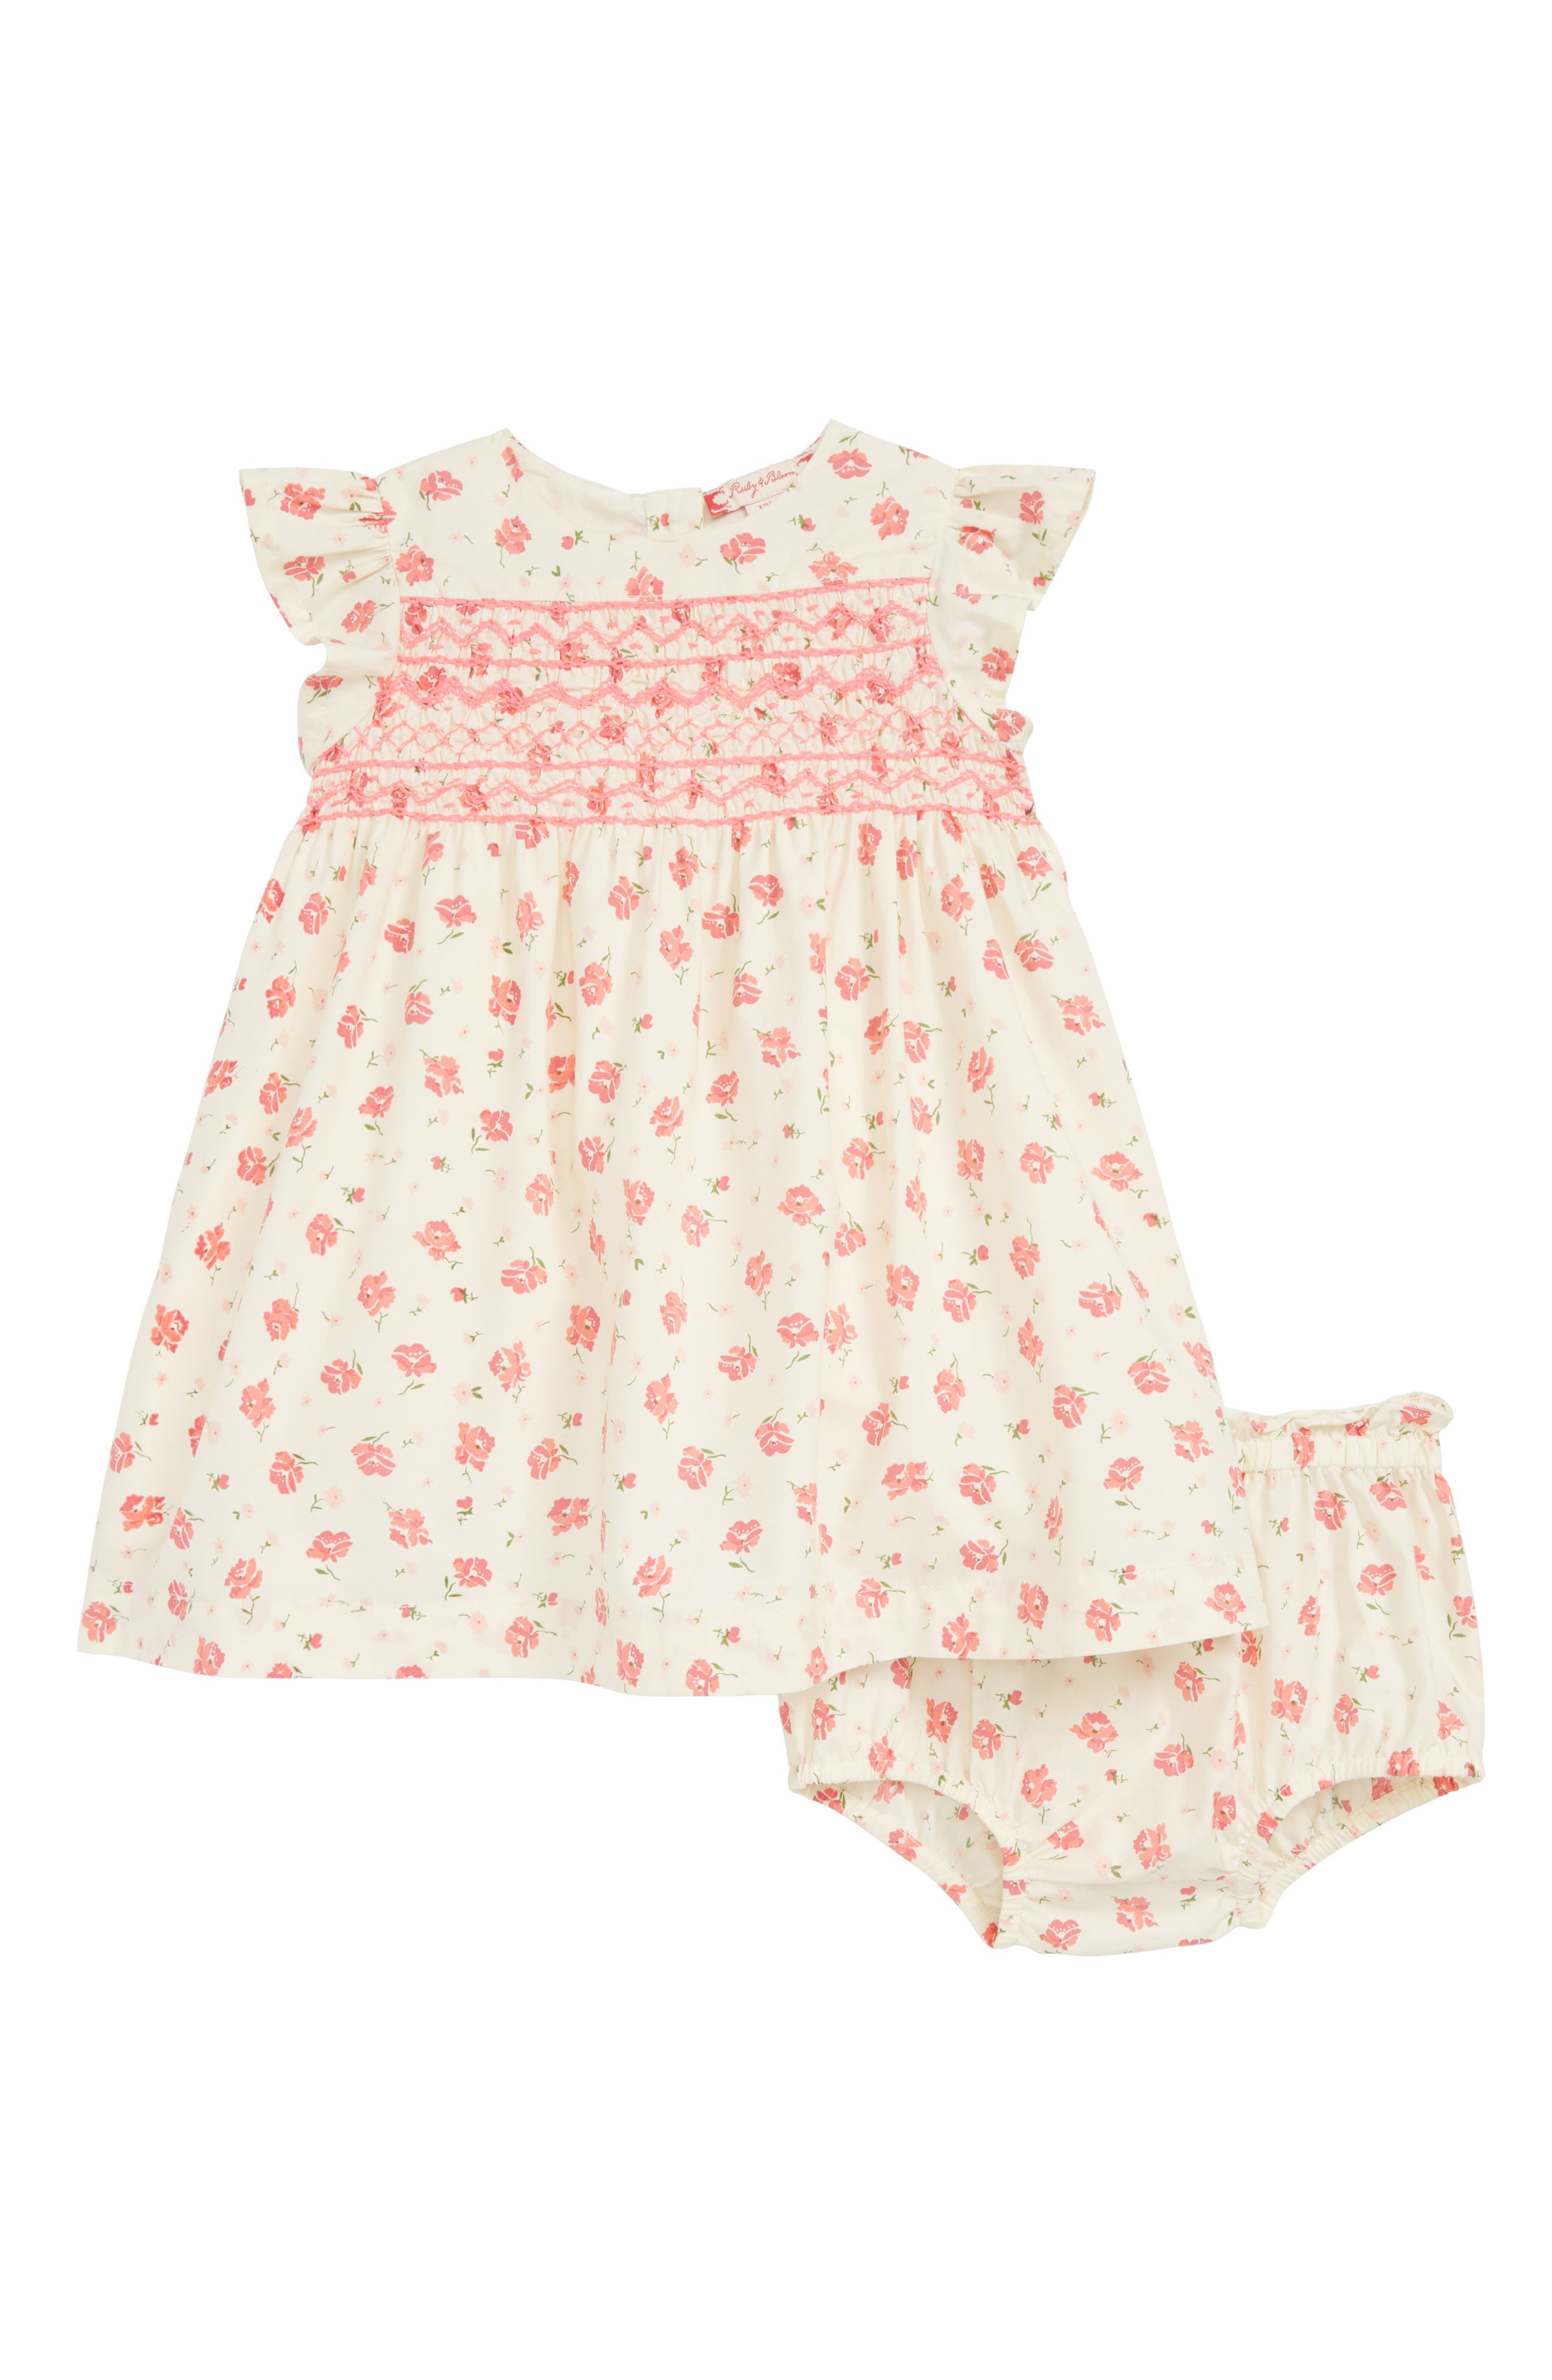 RUBY & BLOOM, Lily Print Smocked Dress, Main thumbnail 1, color, IVORY EGRET CASCADE FLORAL